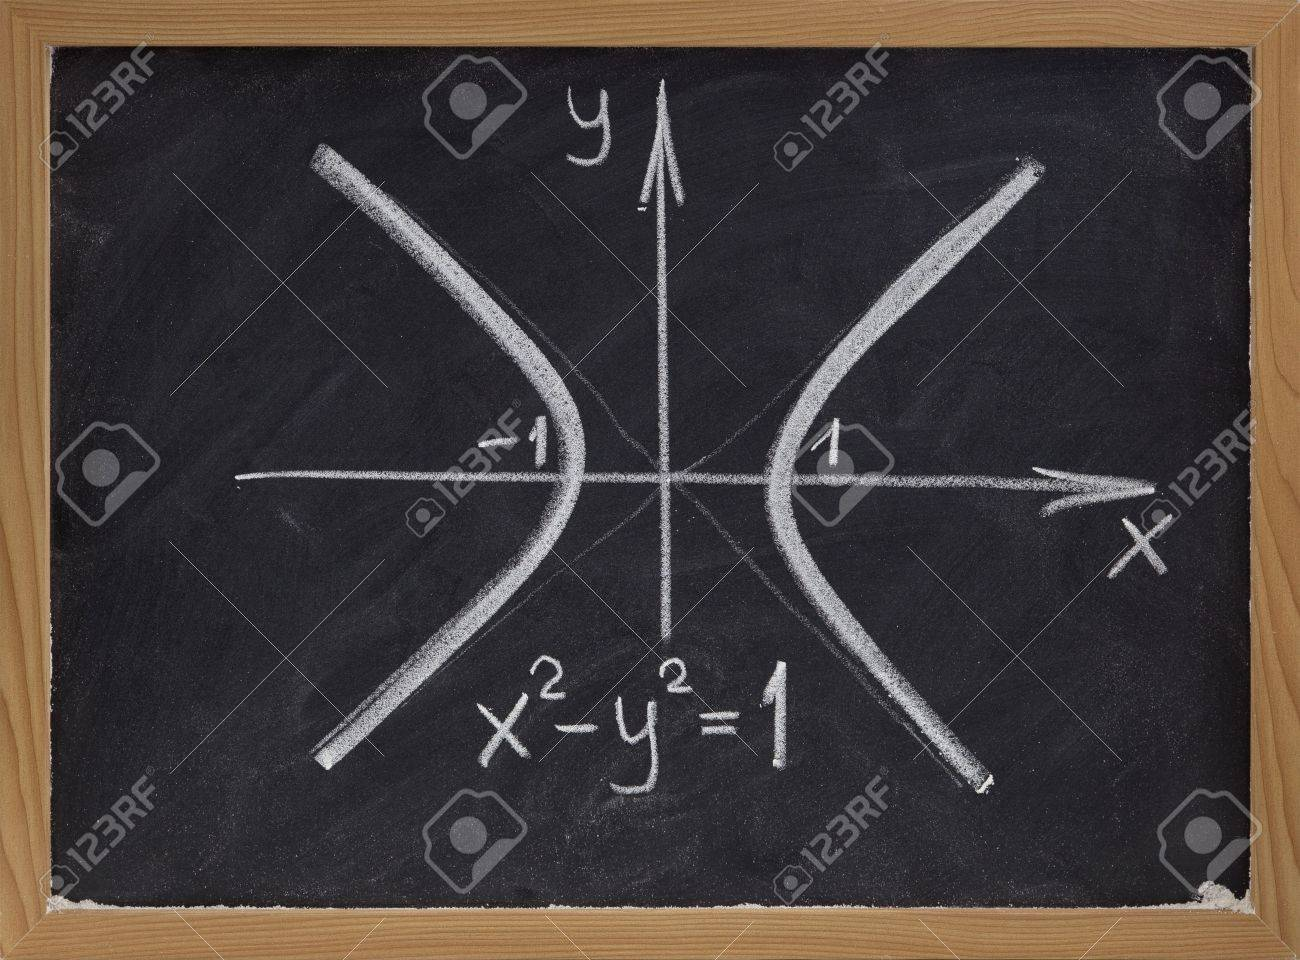 rough white chalk drawing of hyperbola curve (two branches with east-west opening) on blackboard Stock Photo - 5720200